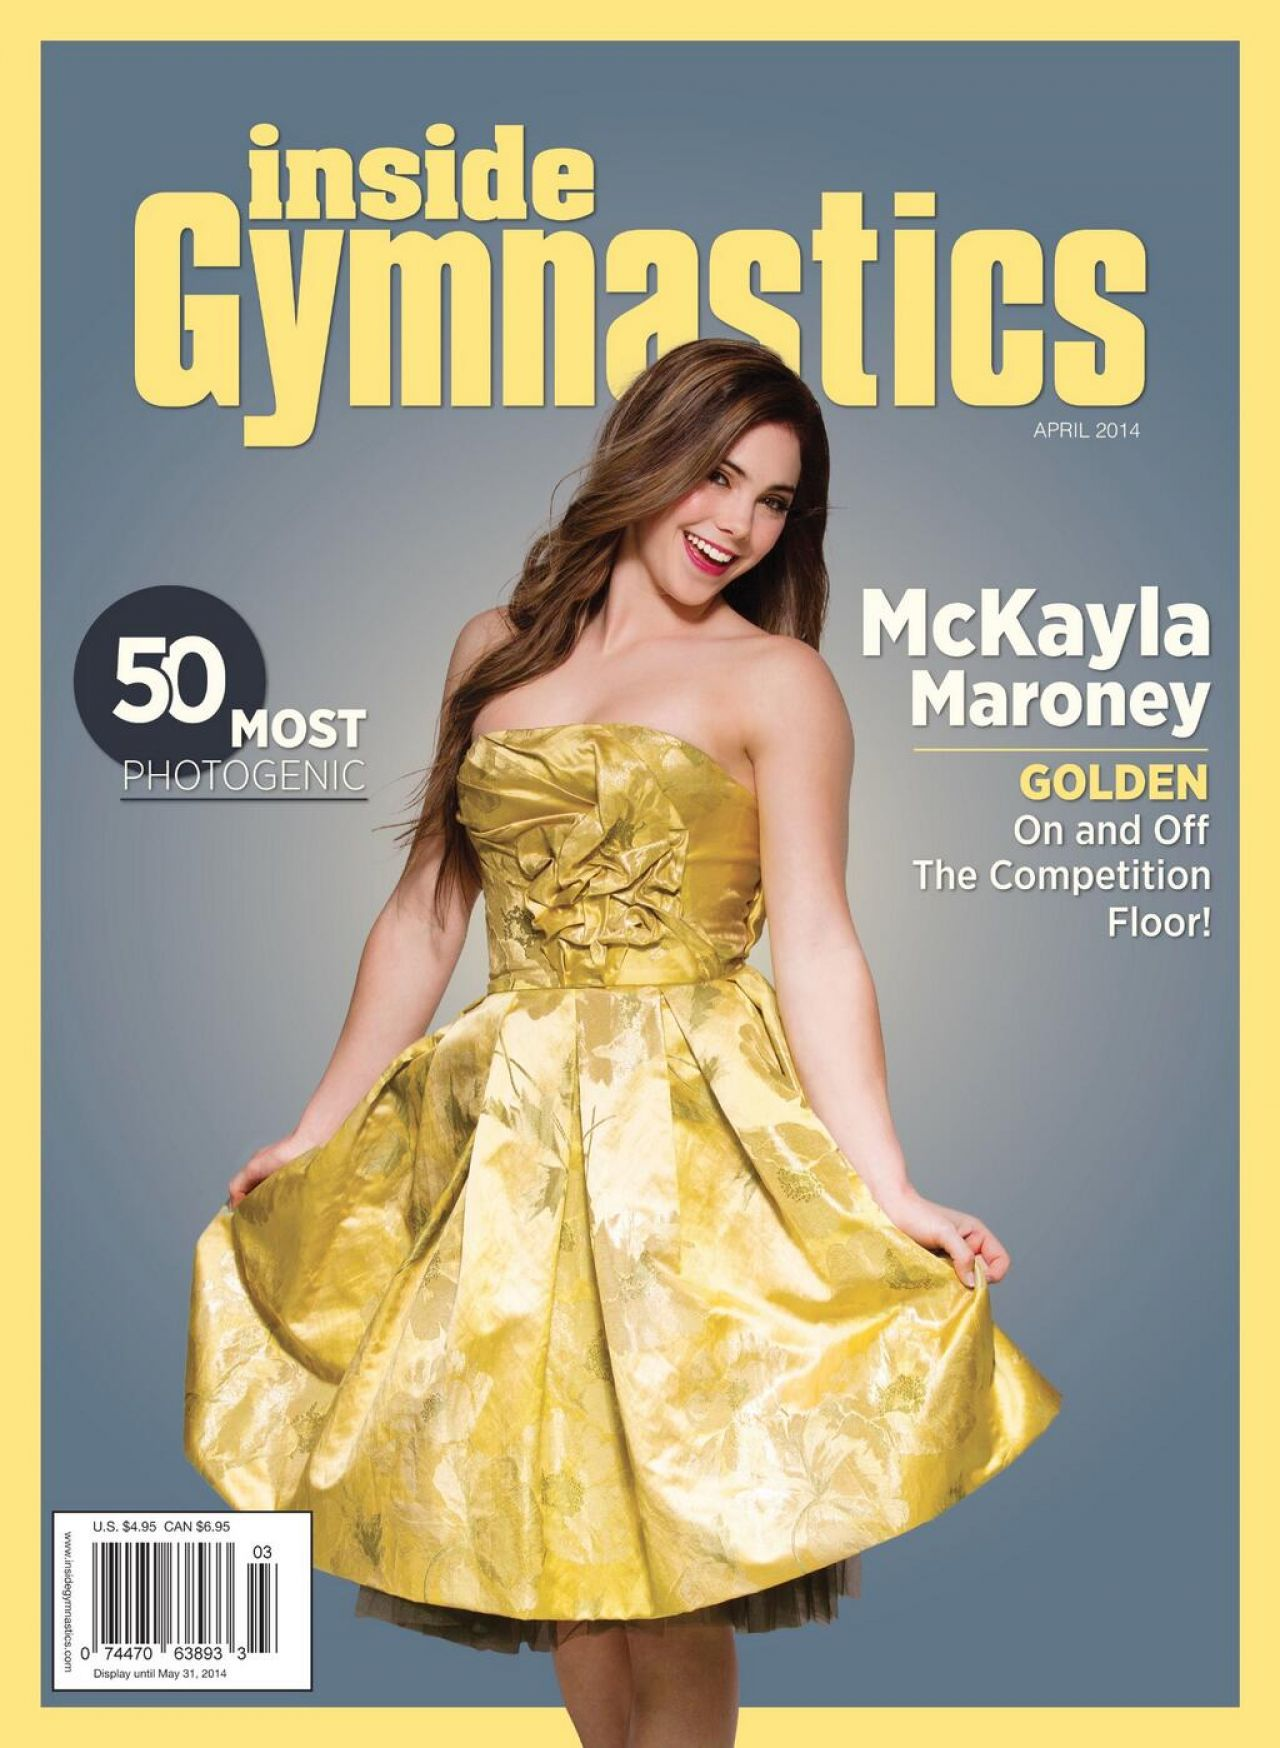 McKayla Maroney - Inside Gymnastics Magazine - April 2014 Cover